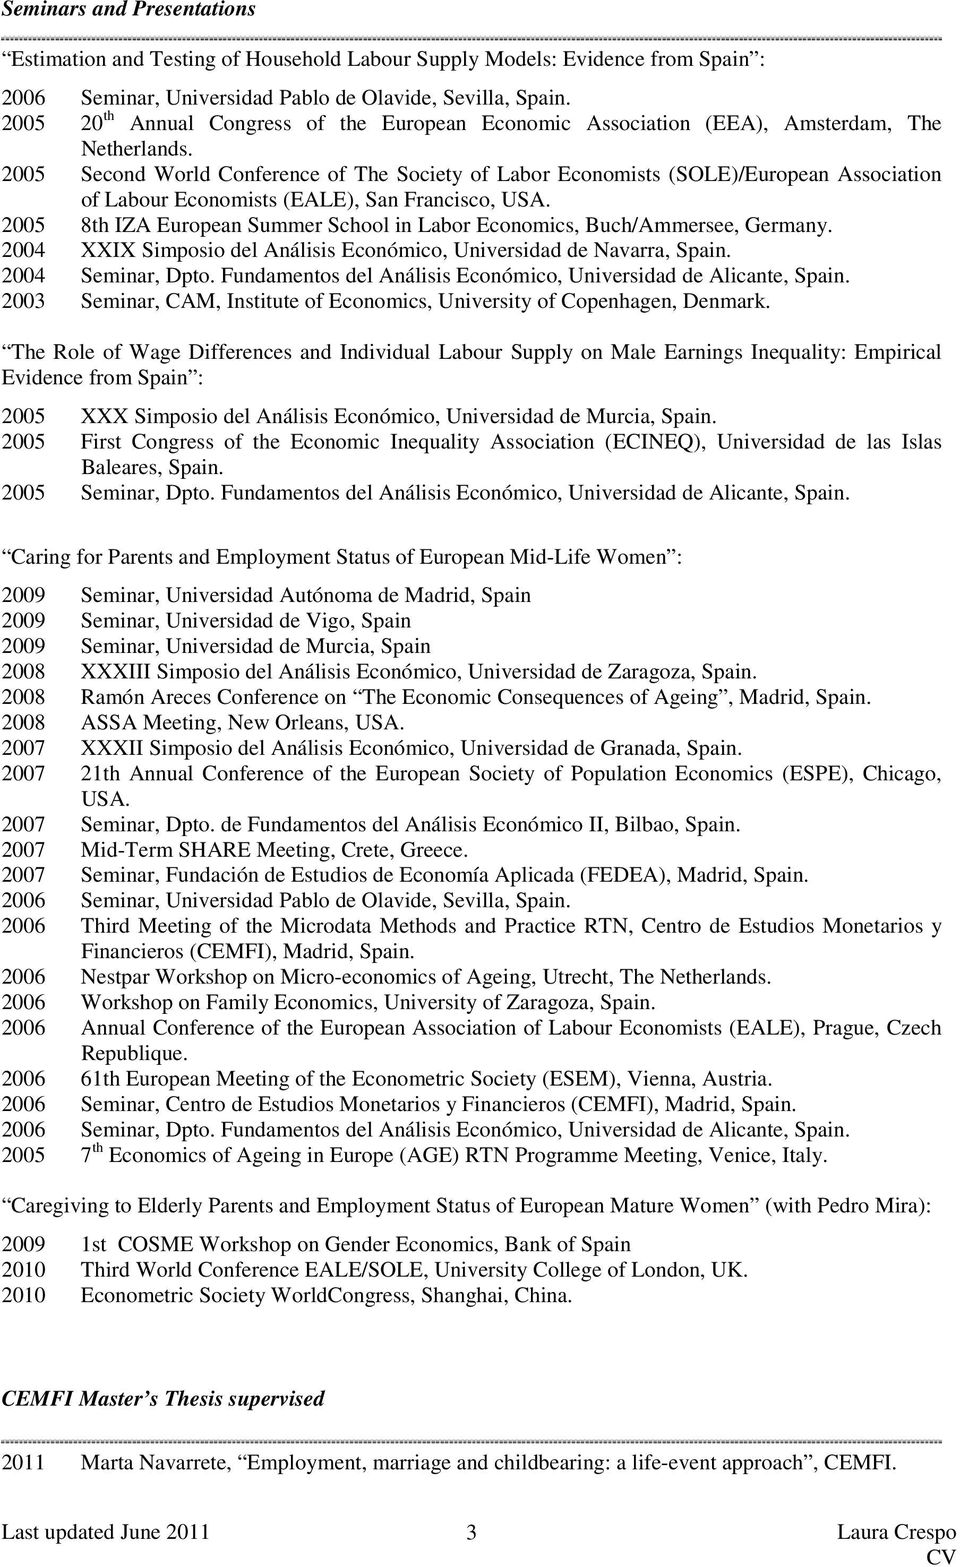 2005 Second World Conference of The Society of Labor Economists (SOLE)/European Association of Labour Economists (EALE), San Francisco, USA.